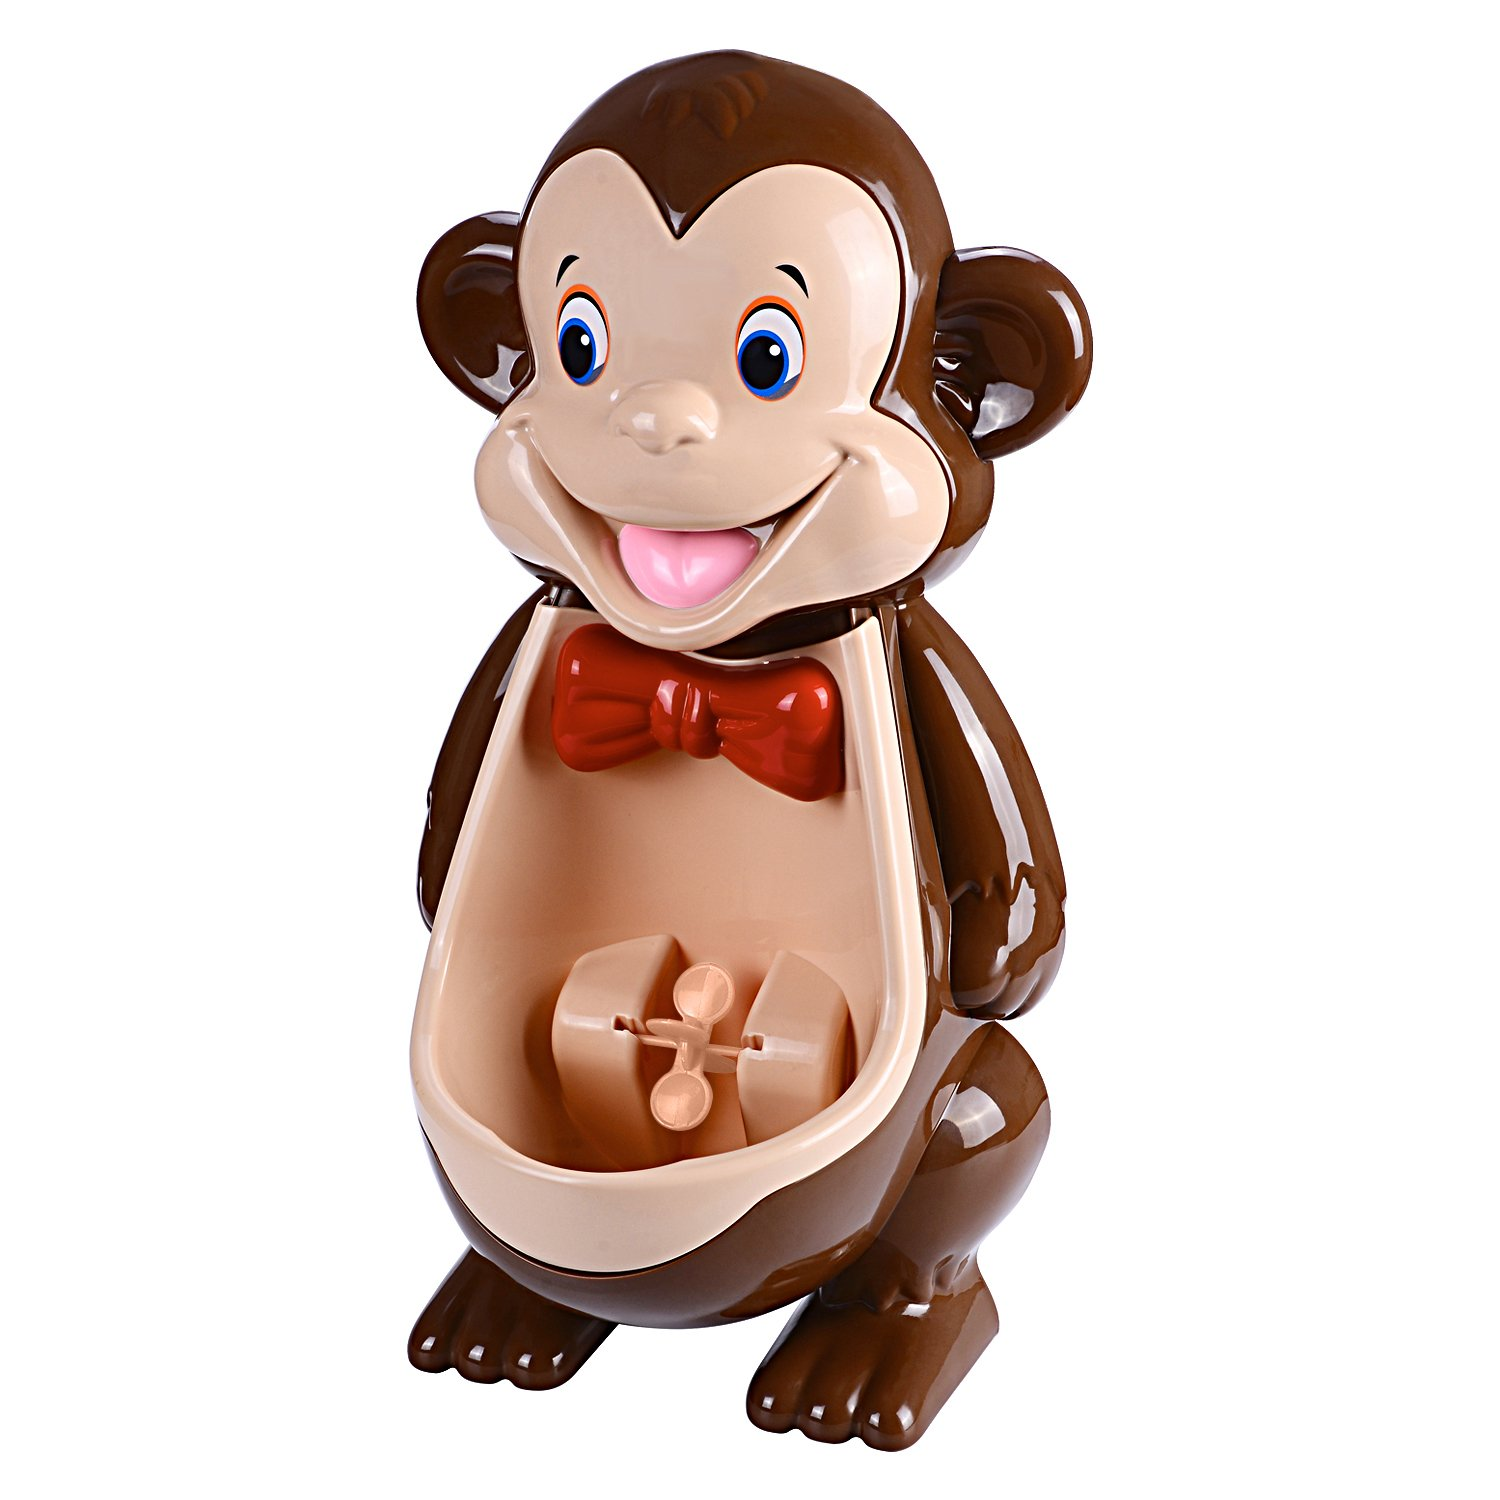 Potty Training Urinals for Boys, Cute Monkey Potty with Funny Aiming Target Windmill for Kids Toddlers Children Boys